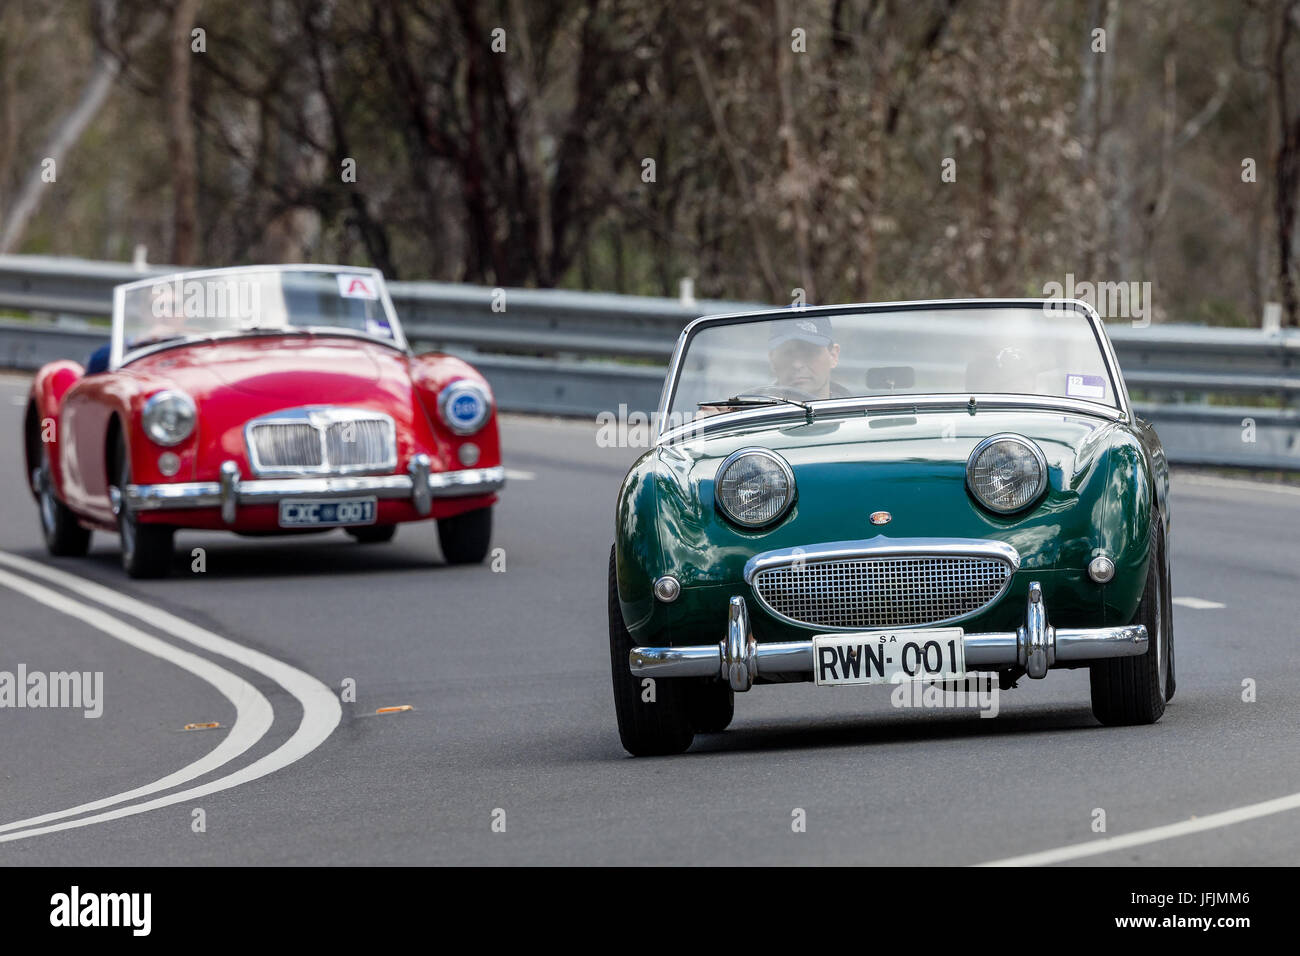 Vintage convertible sports cars driving on country roads near the town of Birdwood, South Australia. - Stock Image